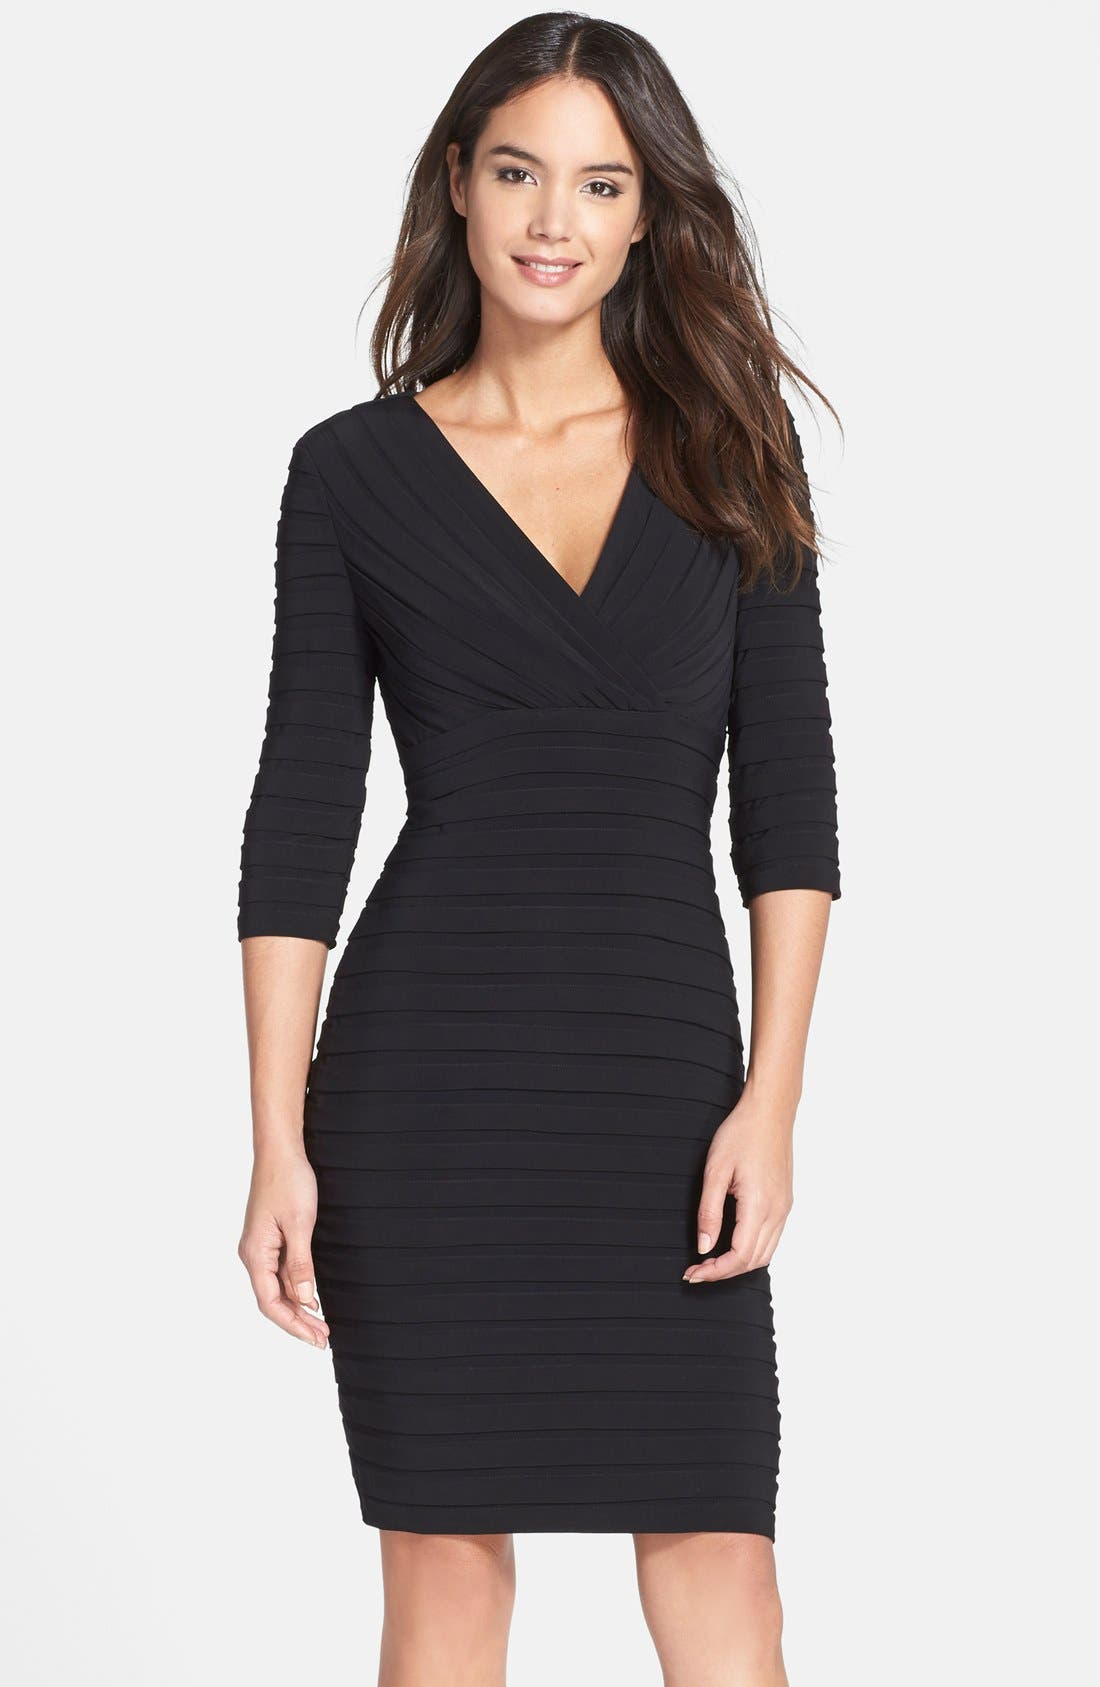 Alternate Image 1 Selected - Adrianna Papell Pleated Jersey Sheath Dress (Regular & Petite)